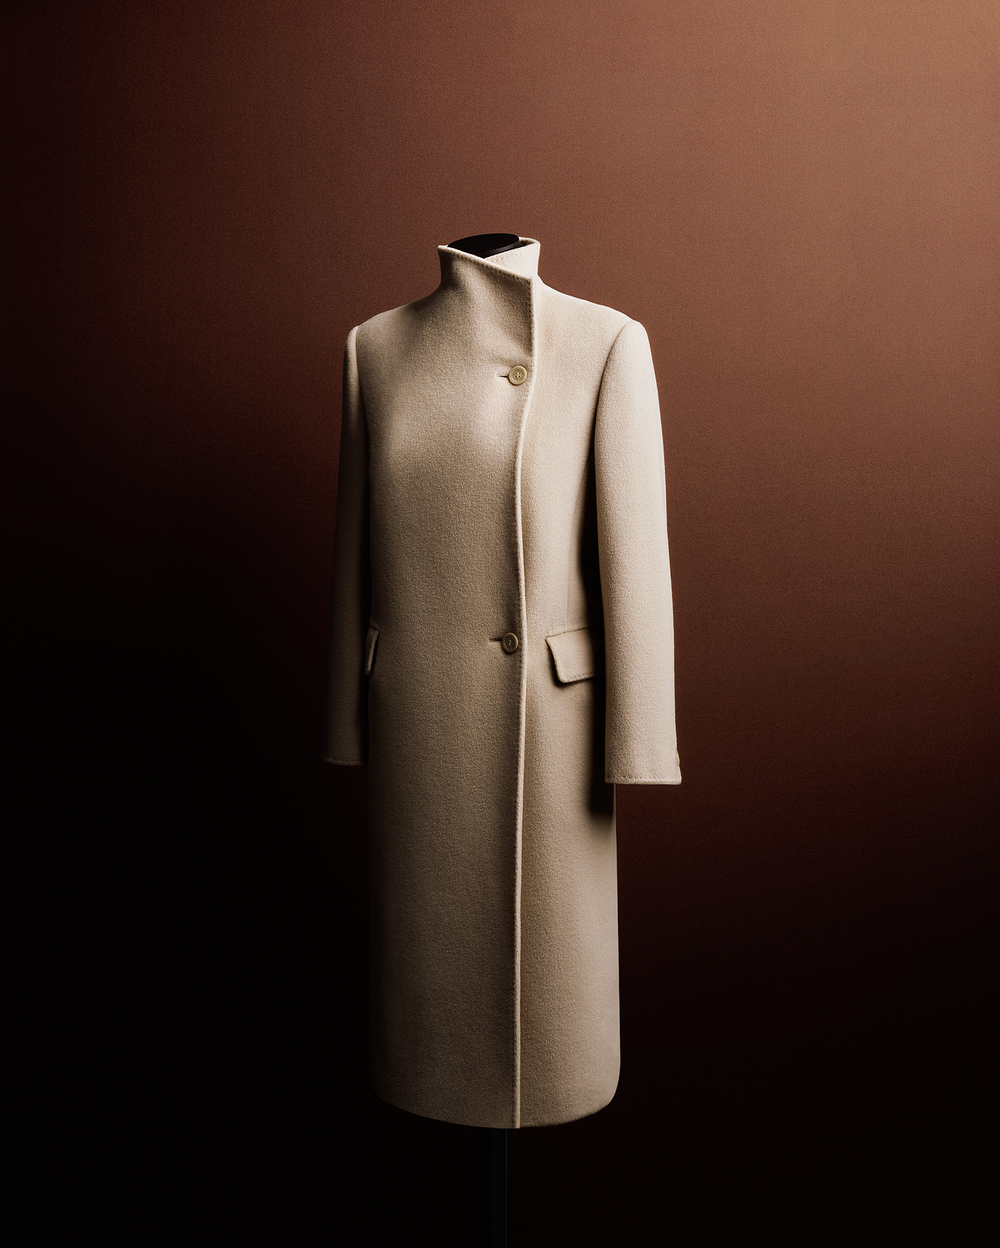 the_tree_mag-coats-by-maxmara-by-dhyan-bodha-derasmo-g-100.jpg